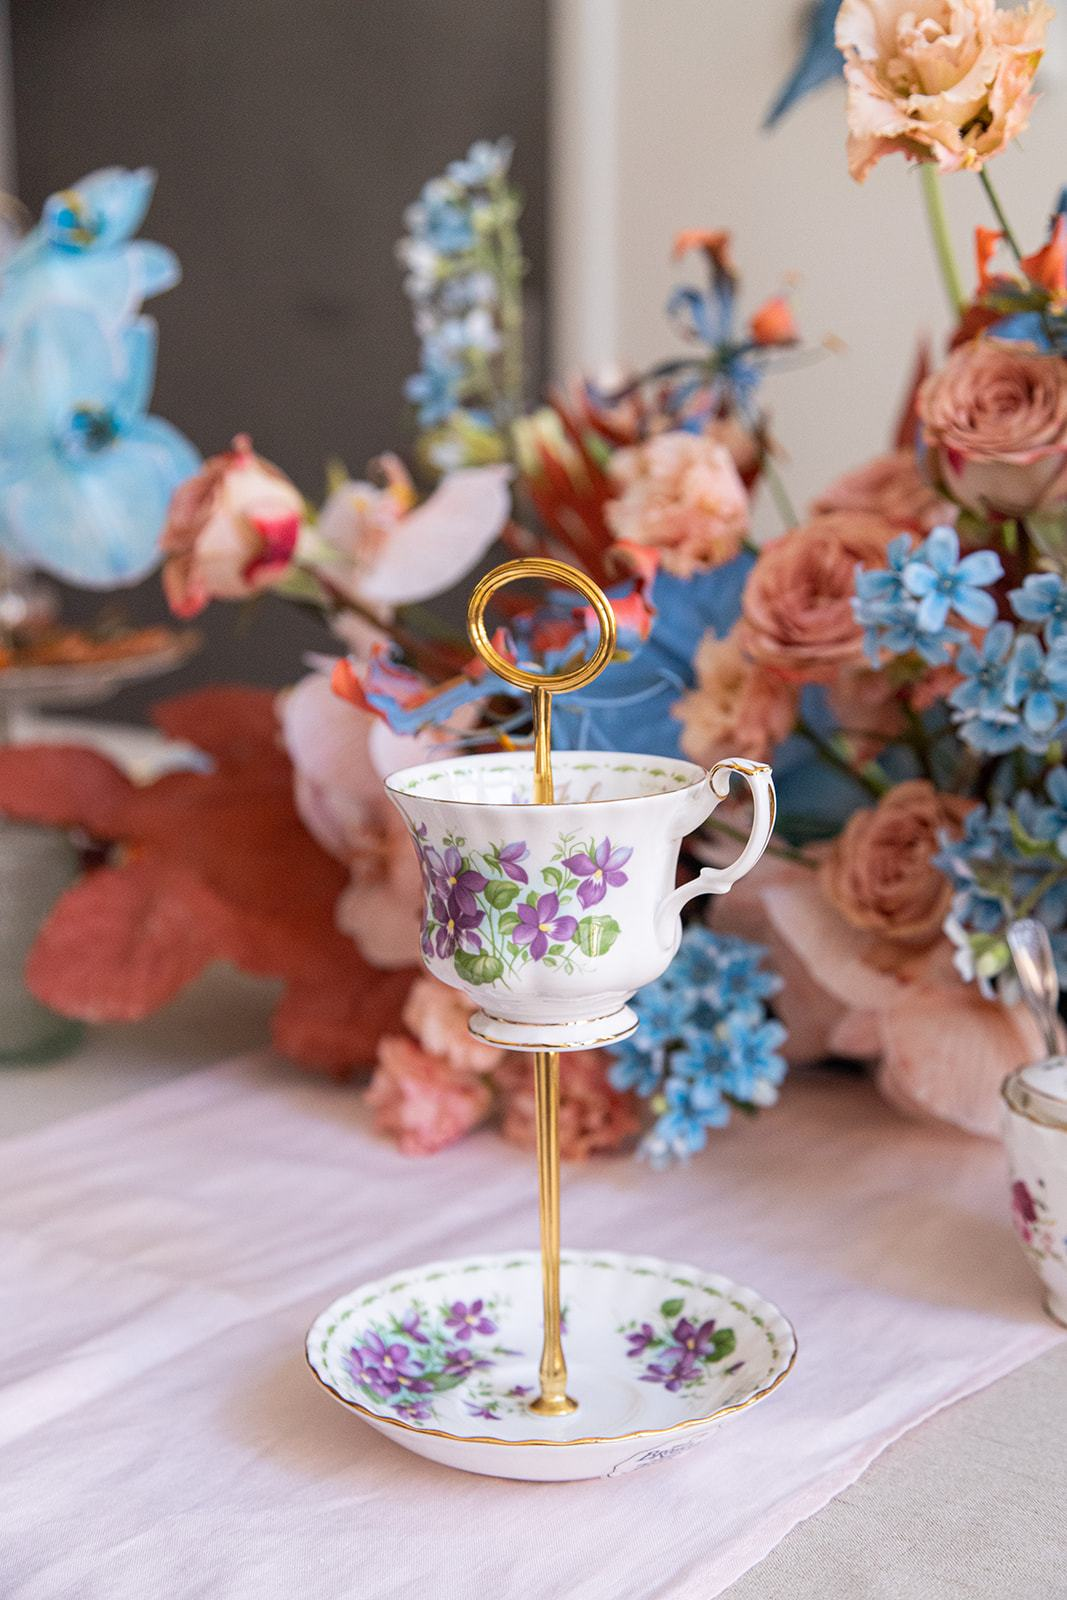 Upcycle Teacup & Saucer | The Brooklyn Teacup - The Brooklyn Teacup